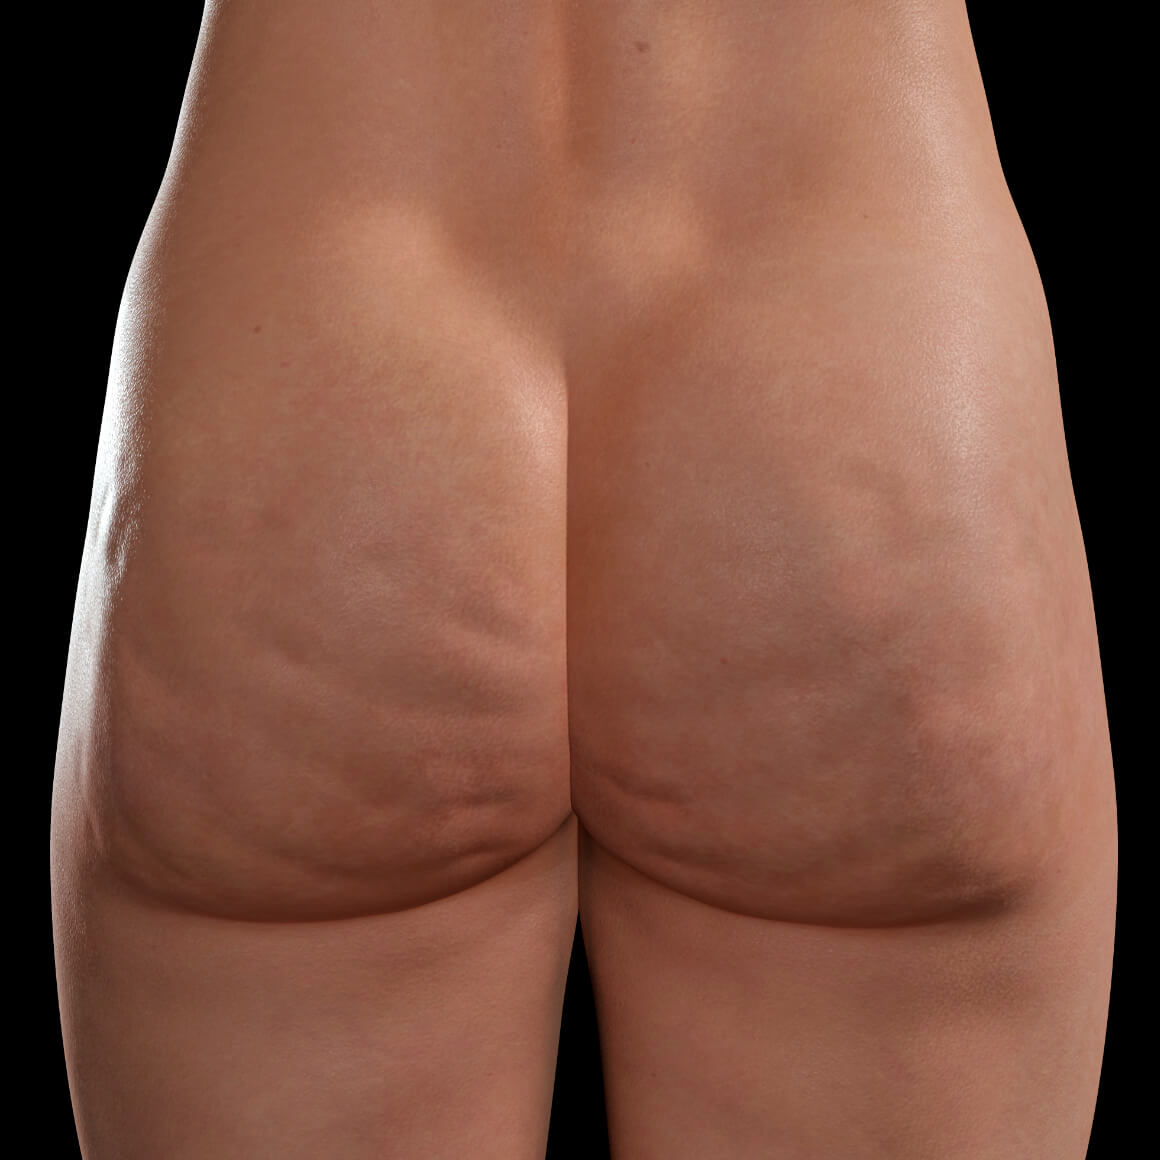 Buttocks of a female patient from Clinique Chloé showing cellulite